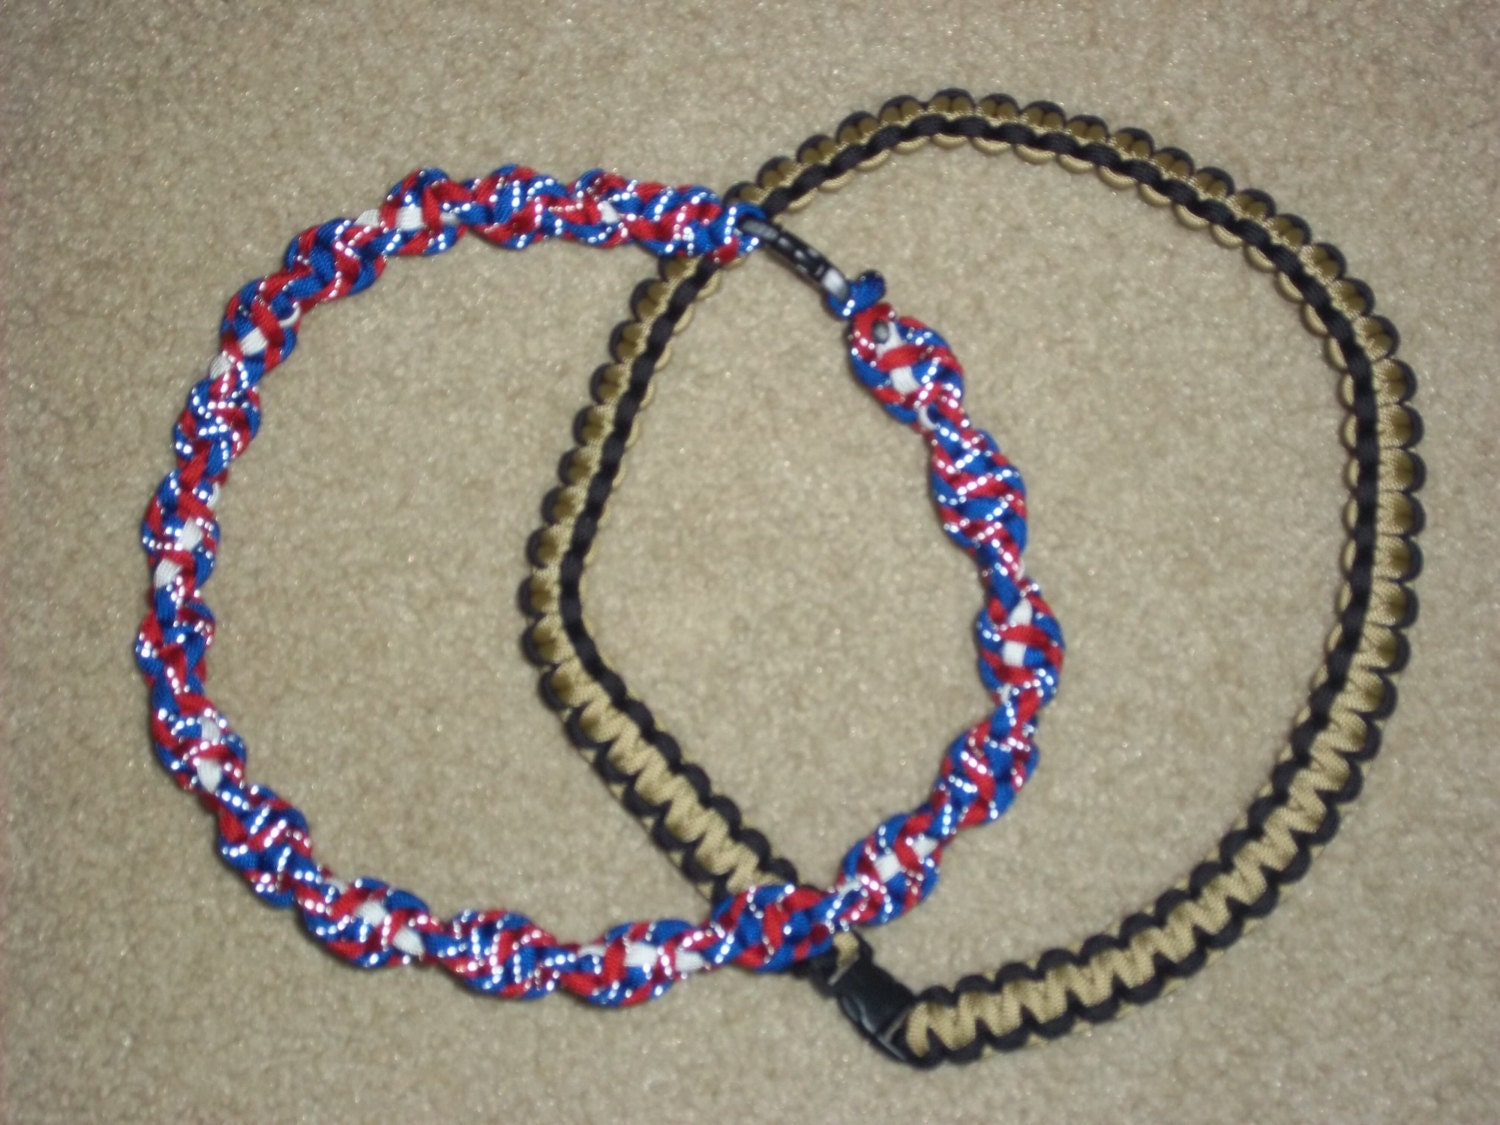 paracord survival necklace by paracordingbytrevor on etsy